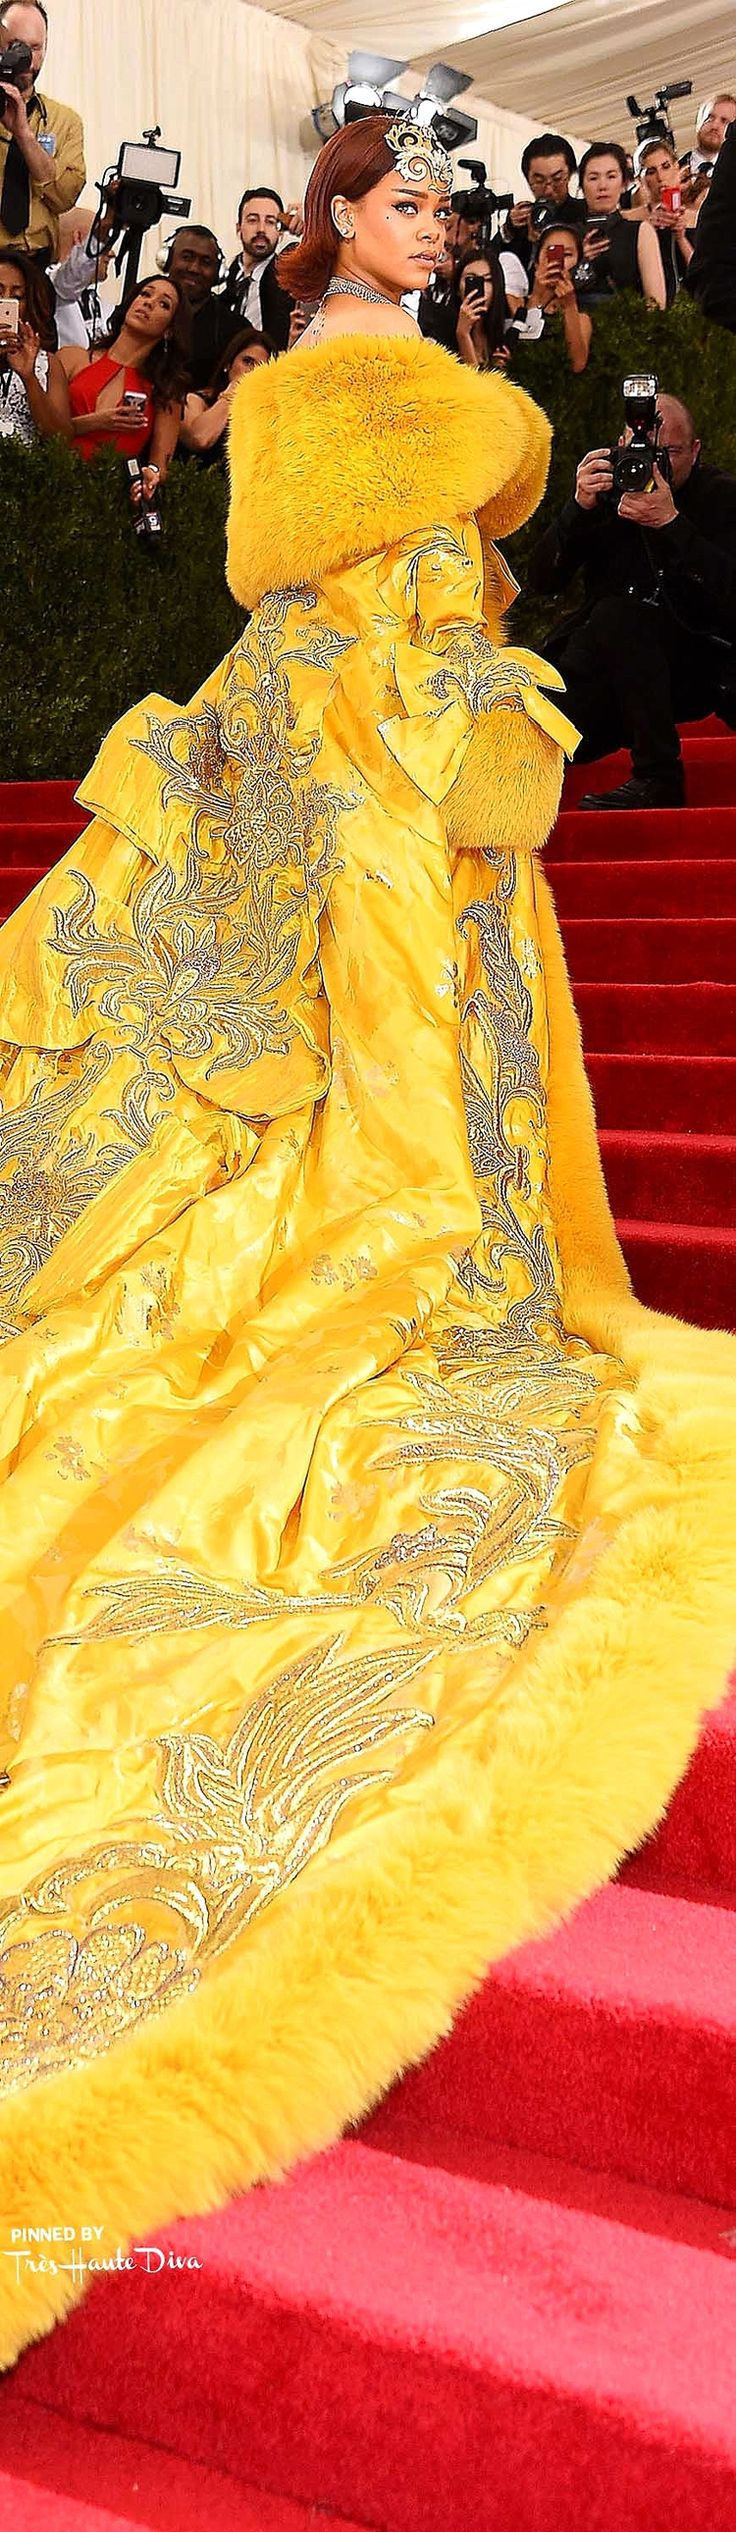 Rihanna in handmade Haute Couture by Guo Pei that took 2 years to make - 2015 Met Gala | House of Beccaria~